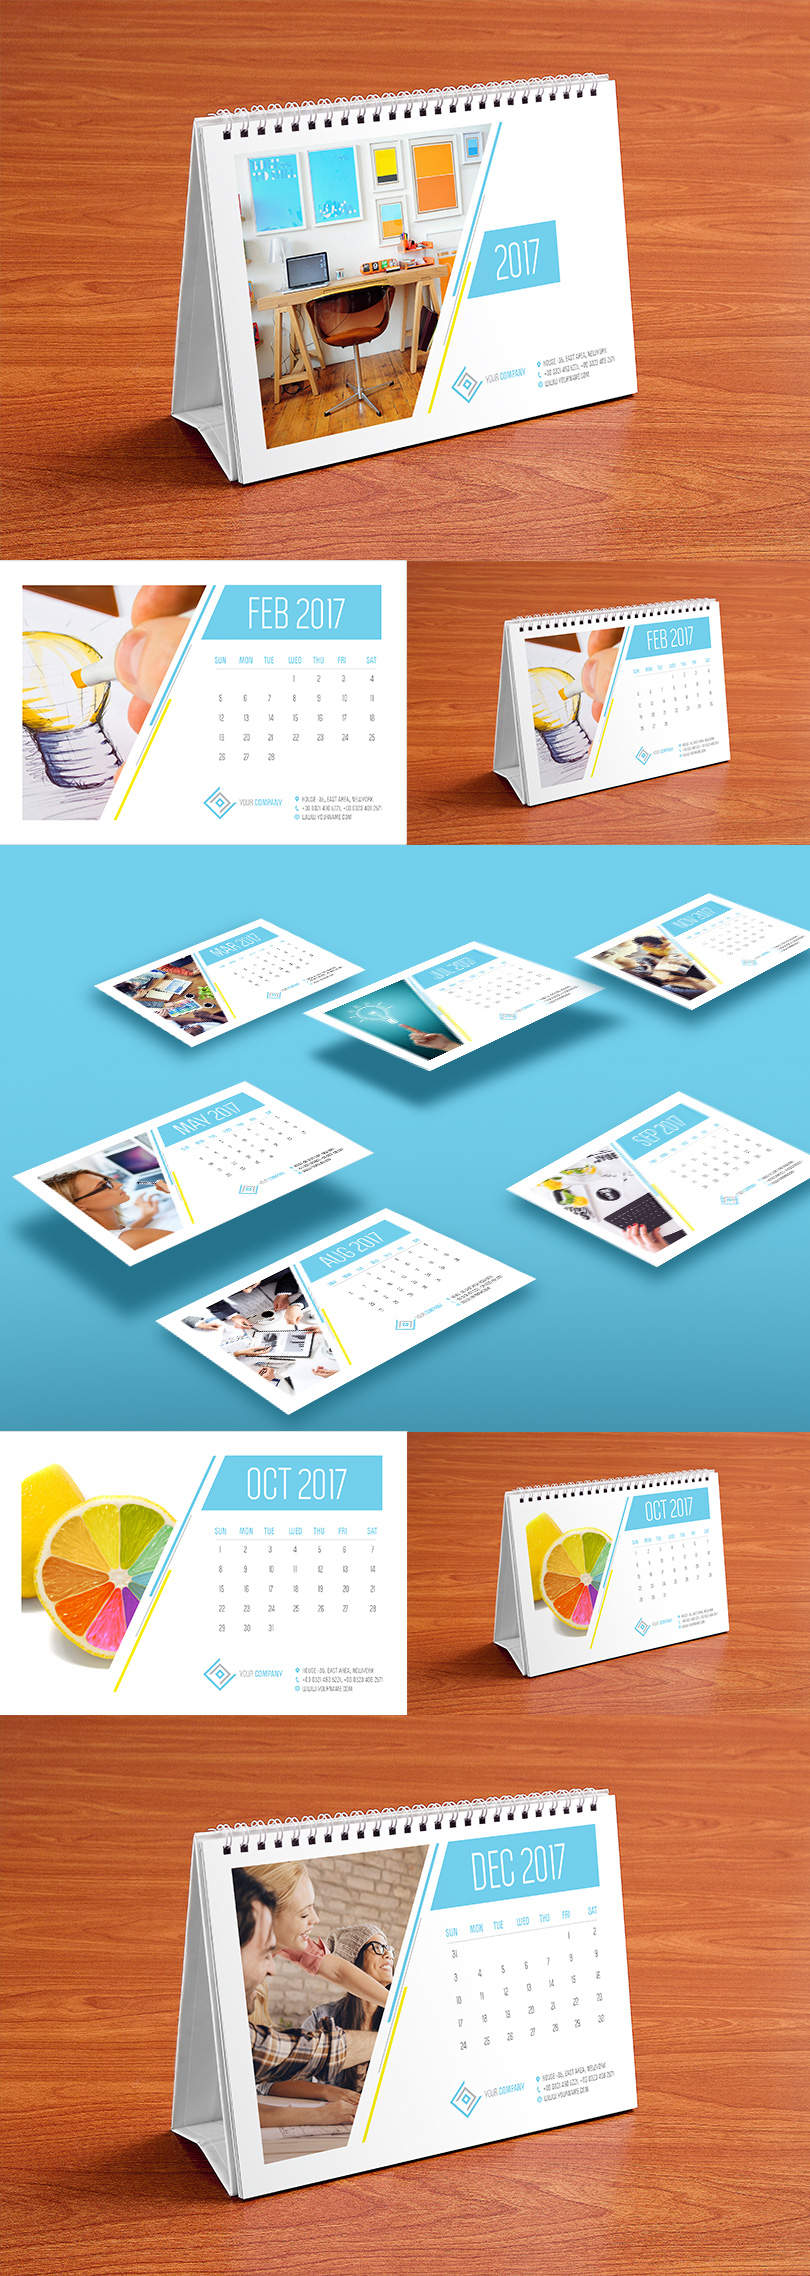 Calendar Design Photo : Table calendar design template and mock up psd